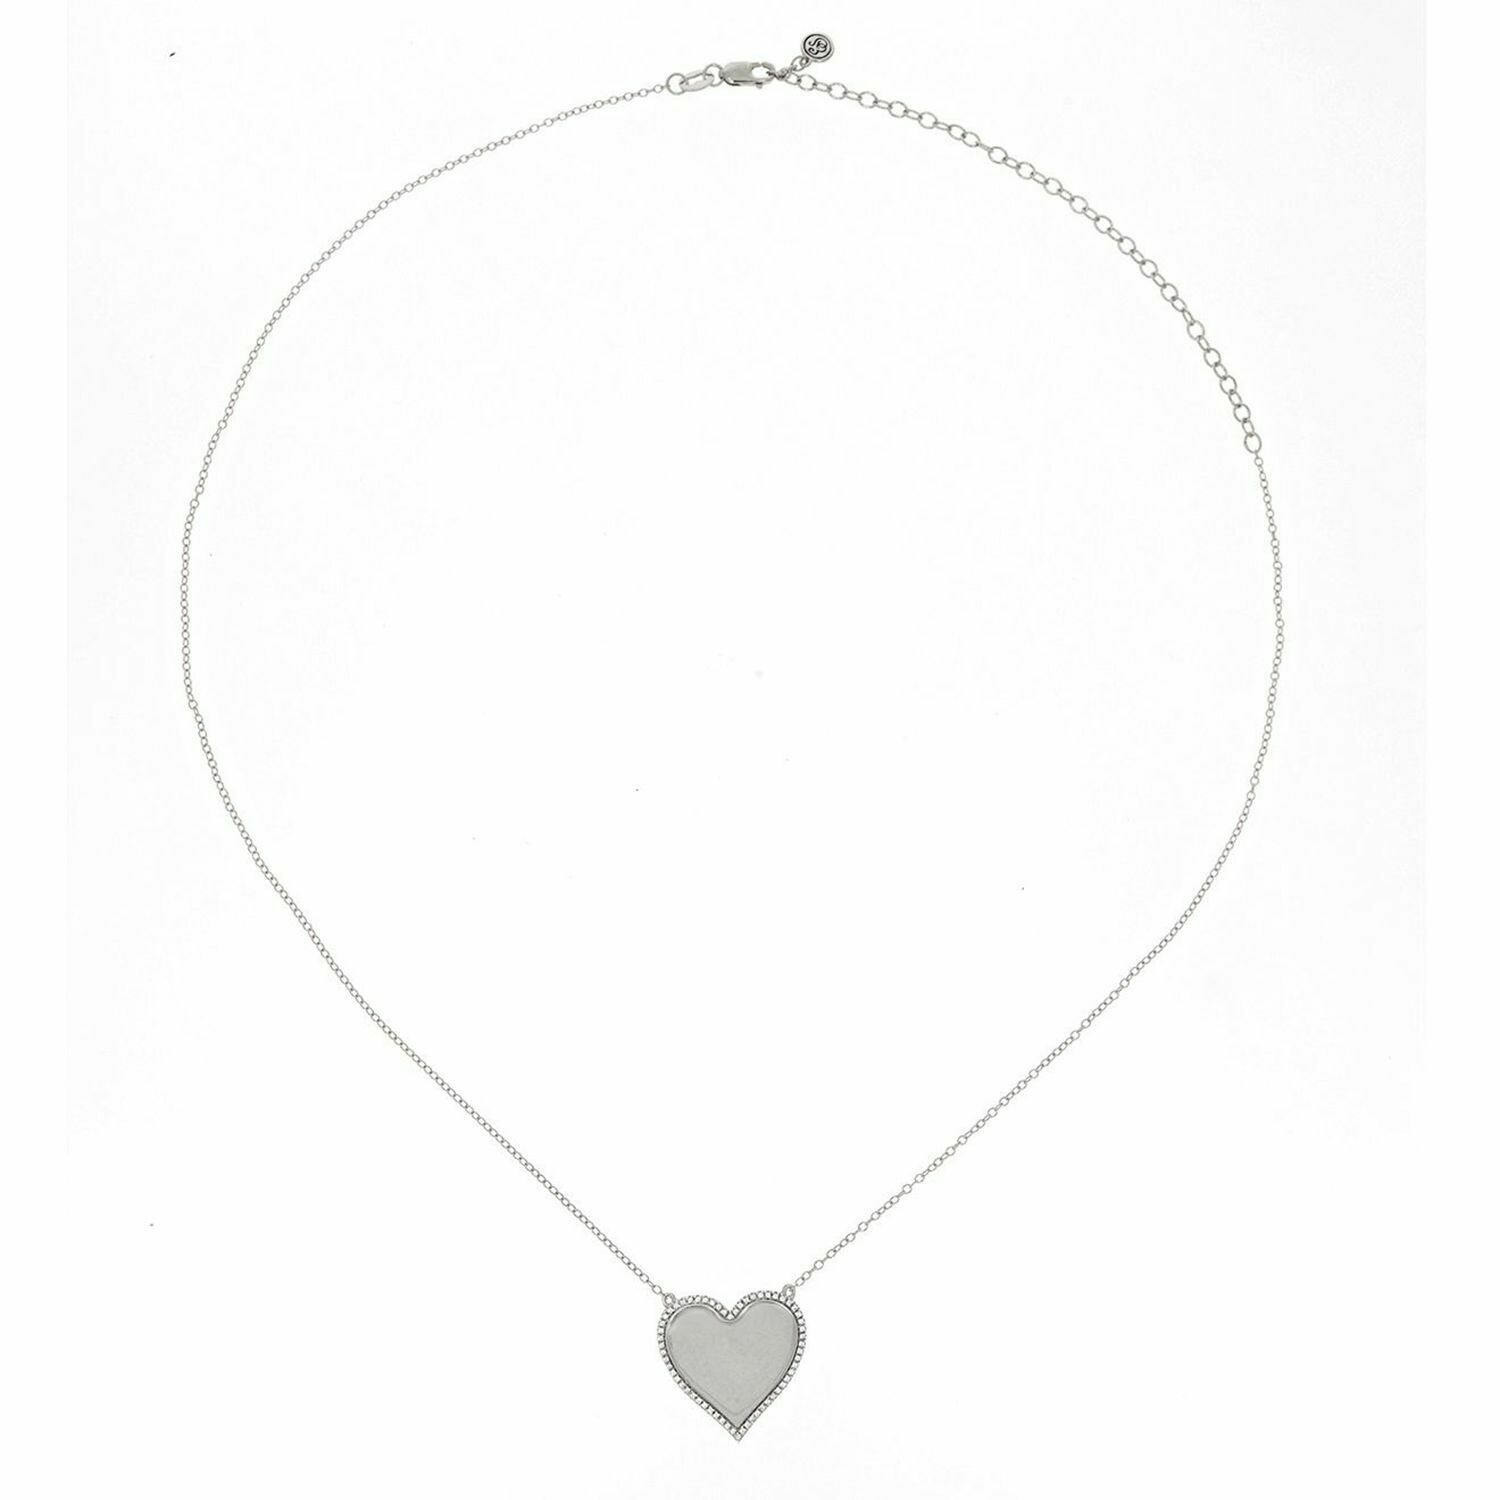 Ella Stein Forever Love Necklace (Silver)